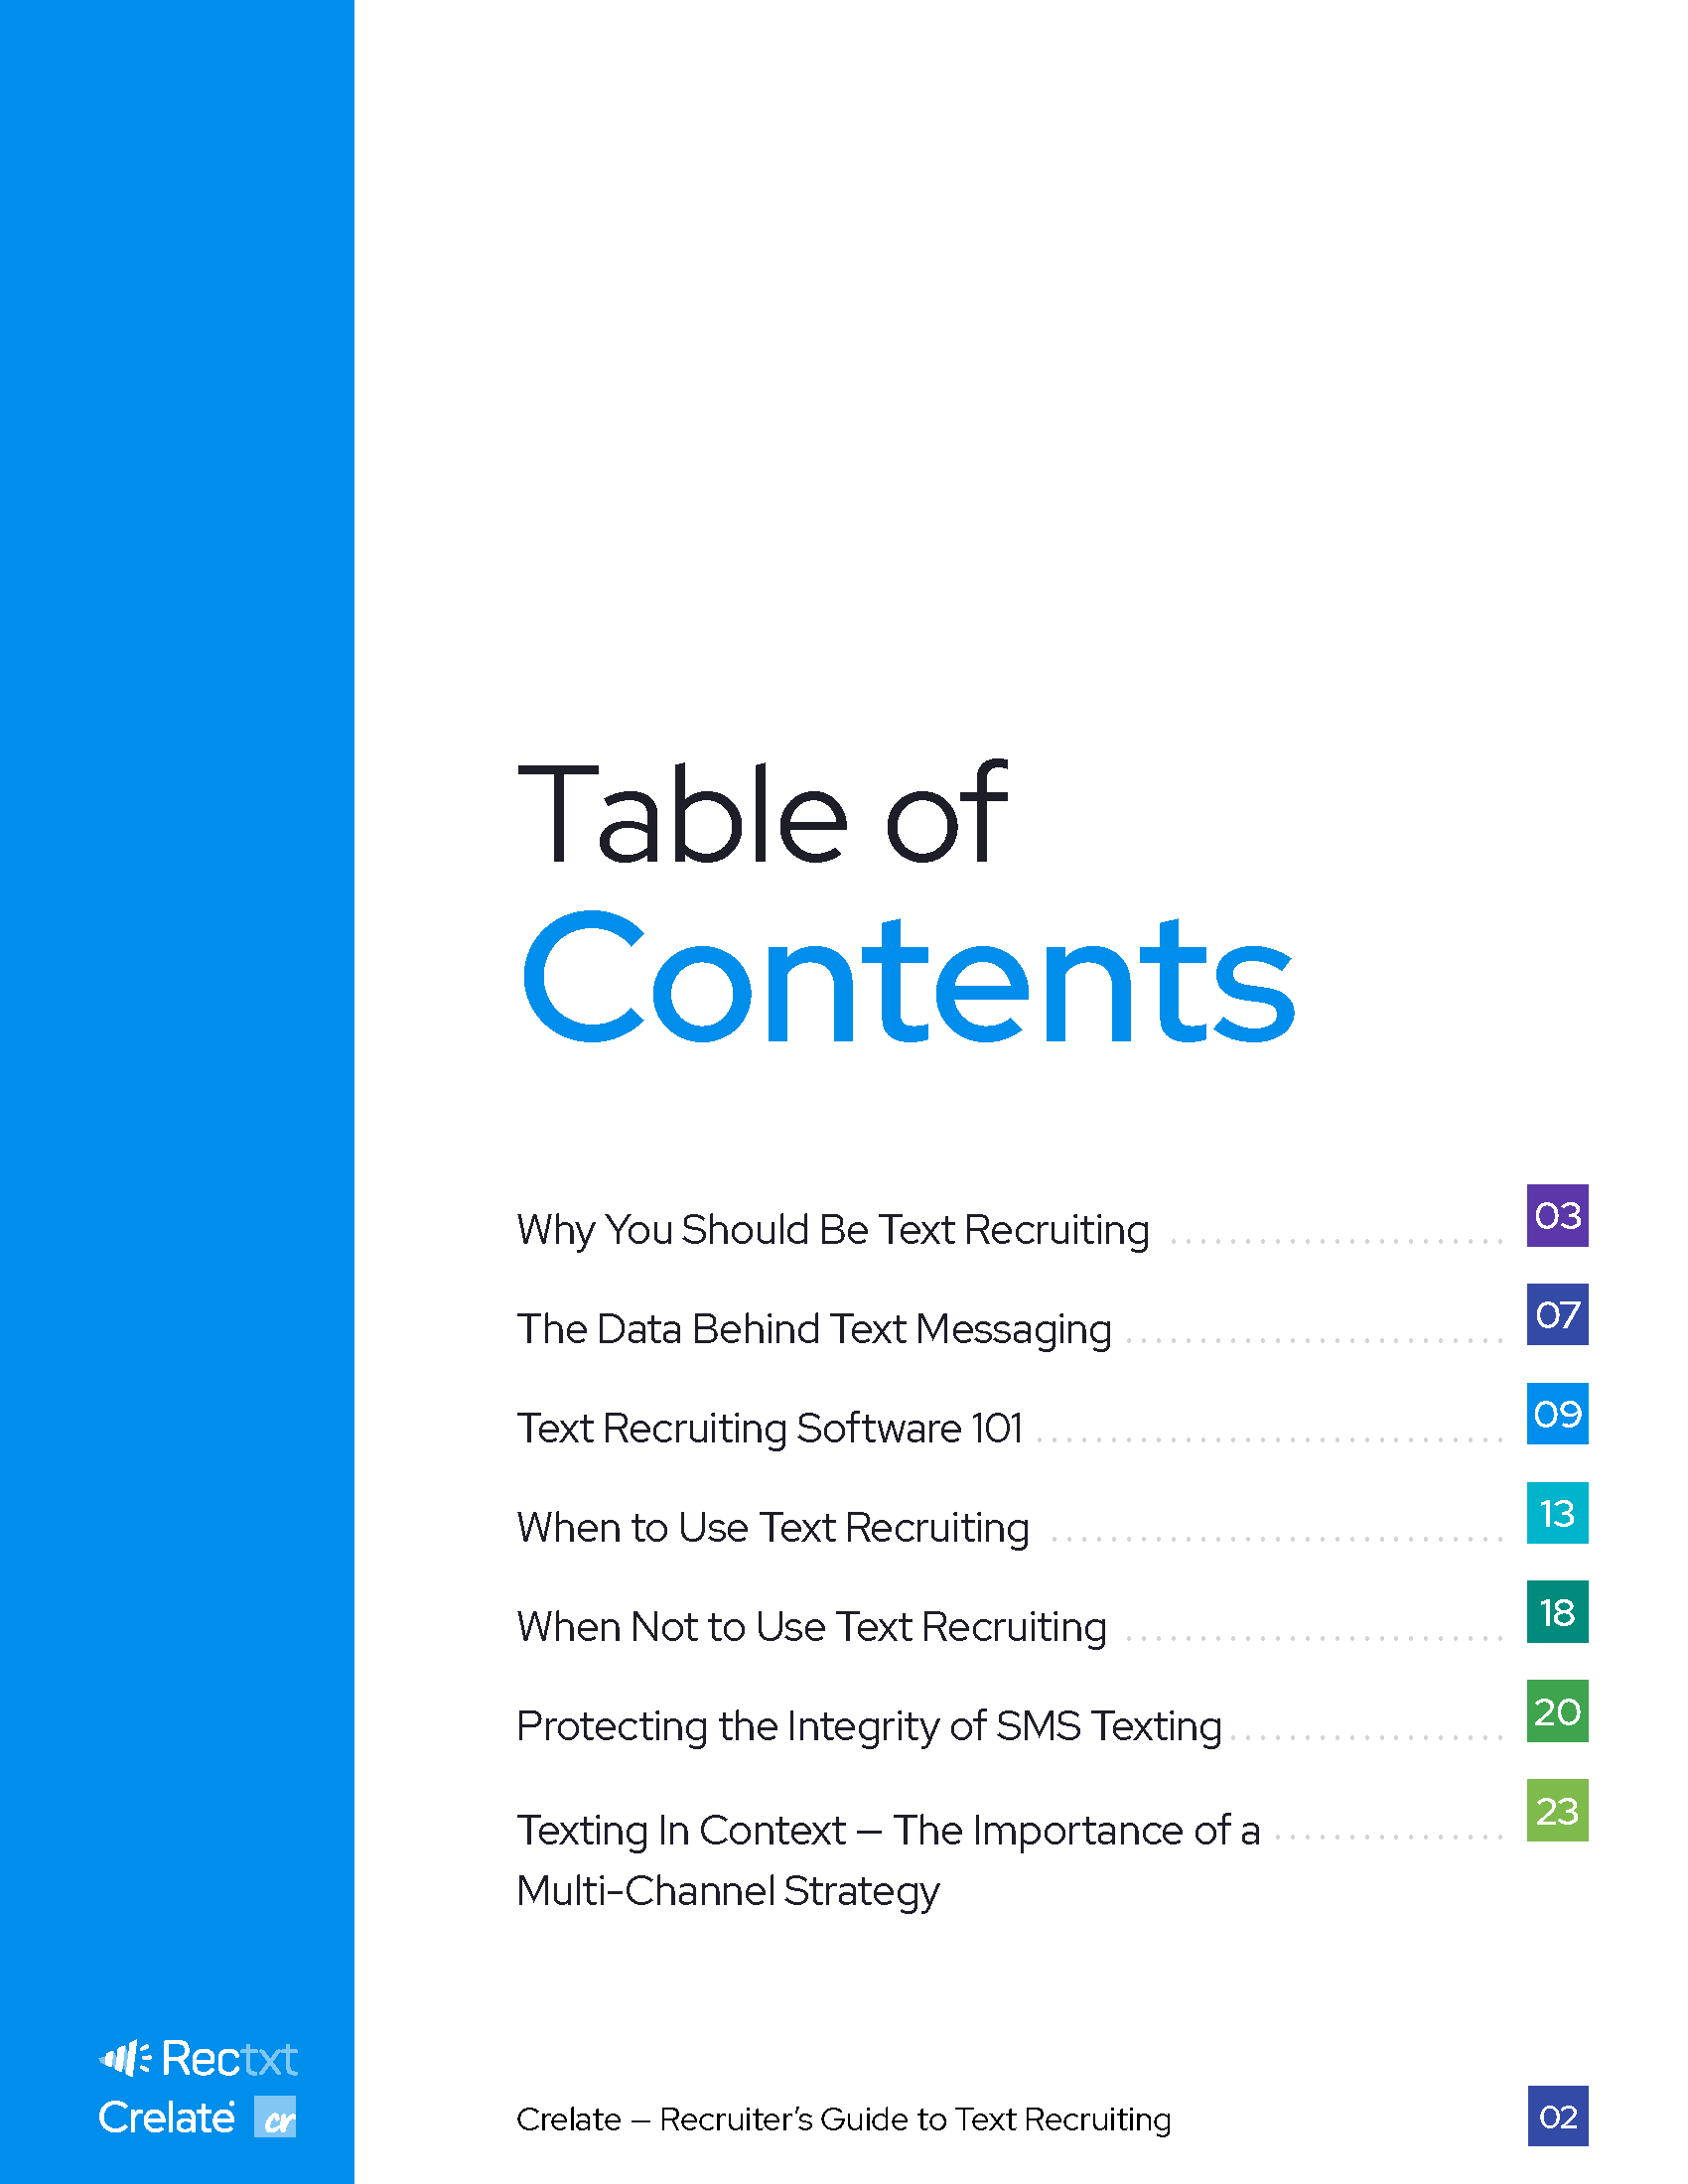 Rectxt + Crelate - Table of Contents of Recruiter's Guide to Text Recruiting